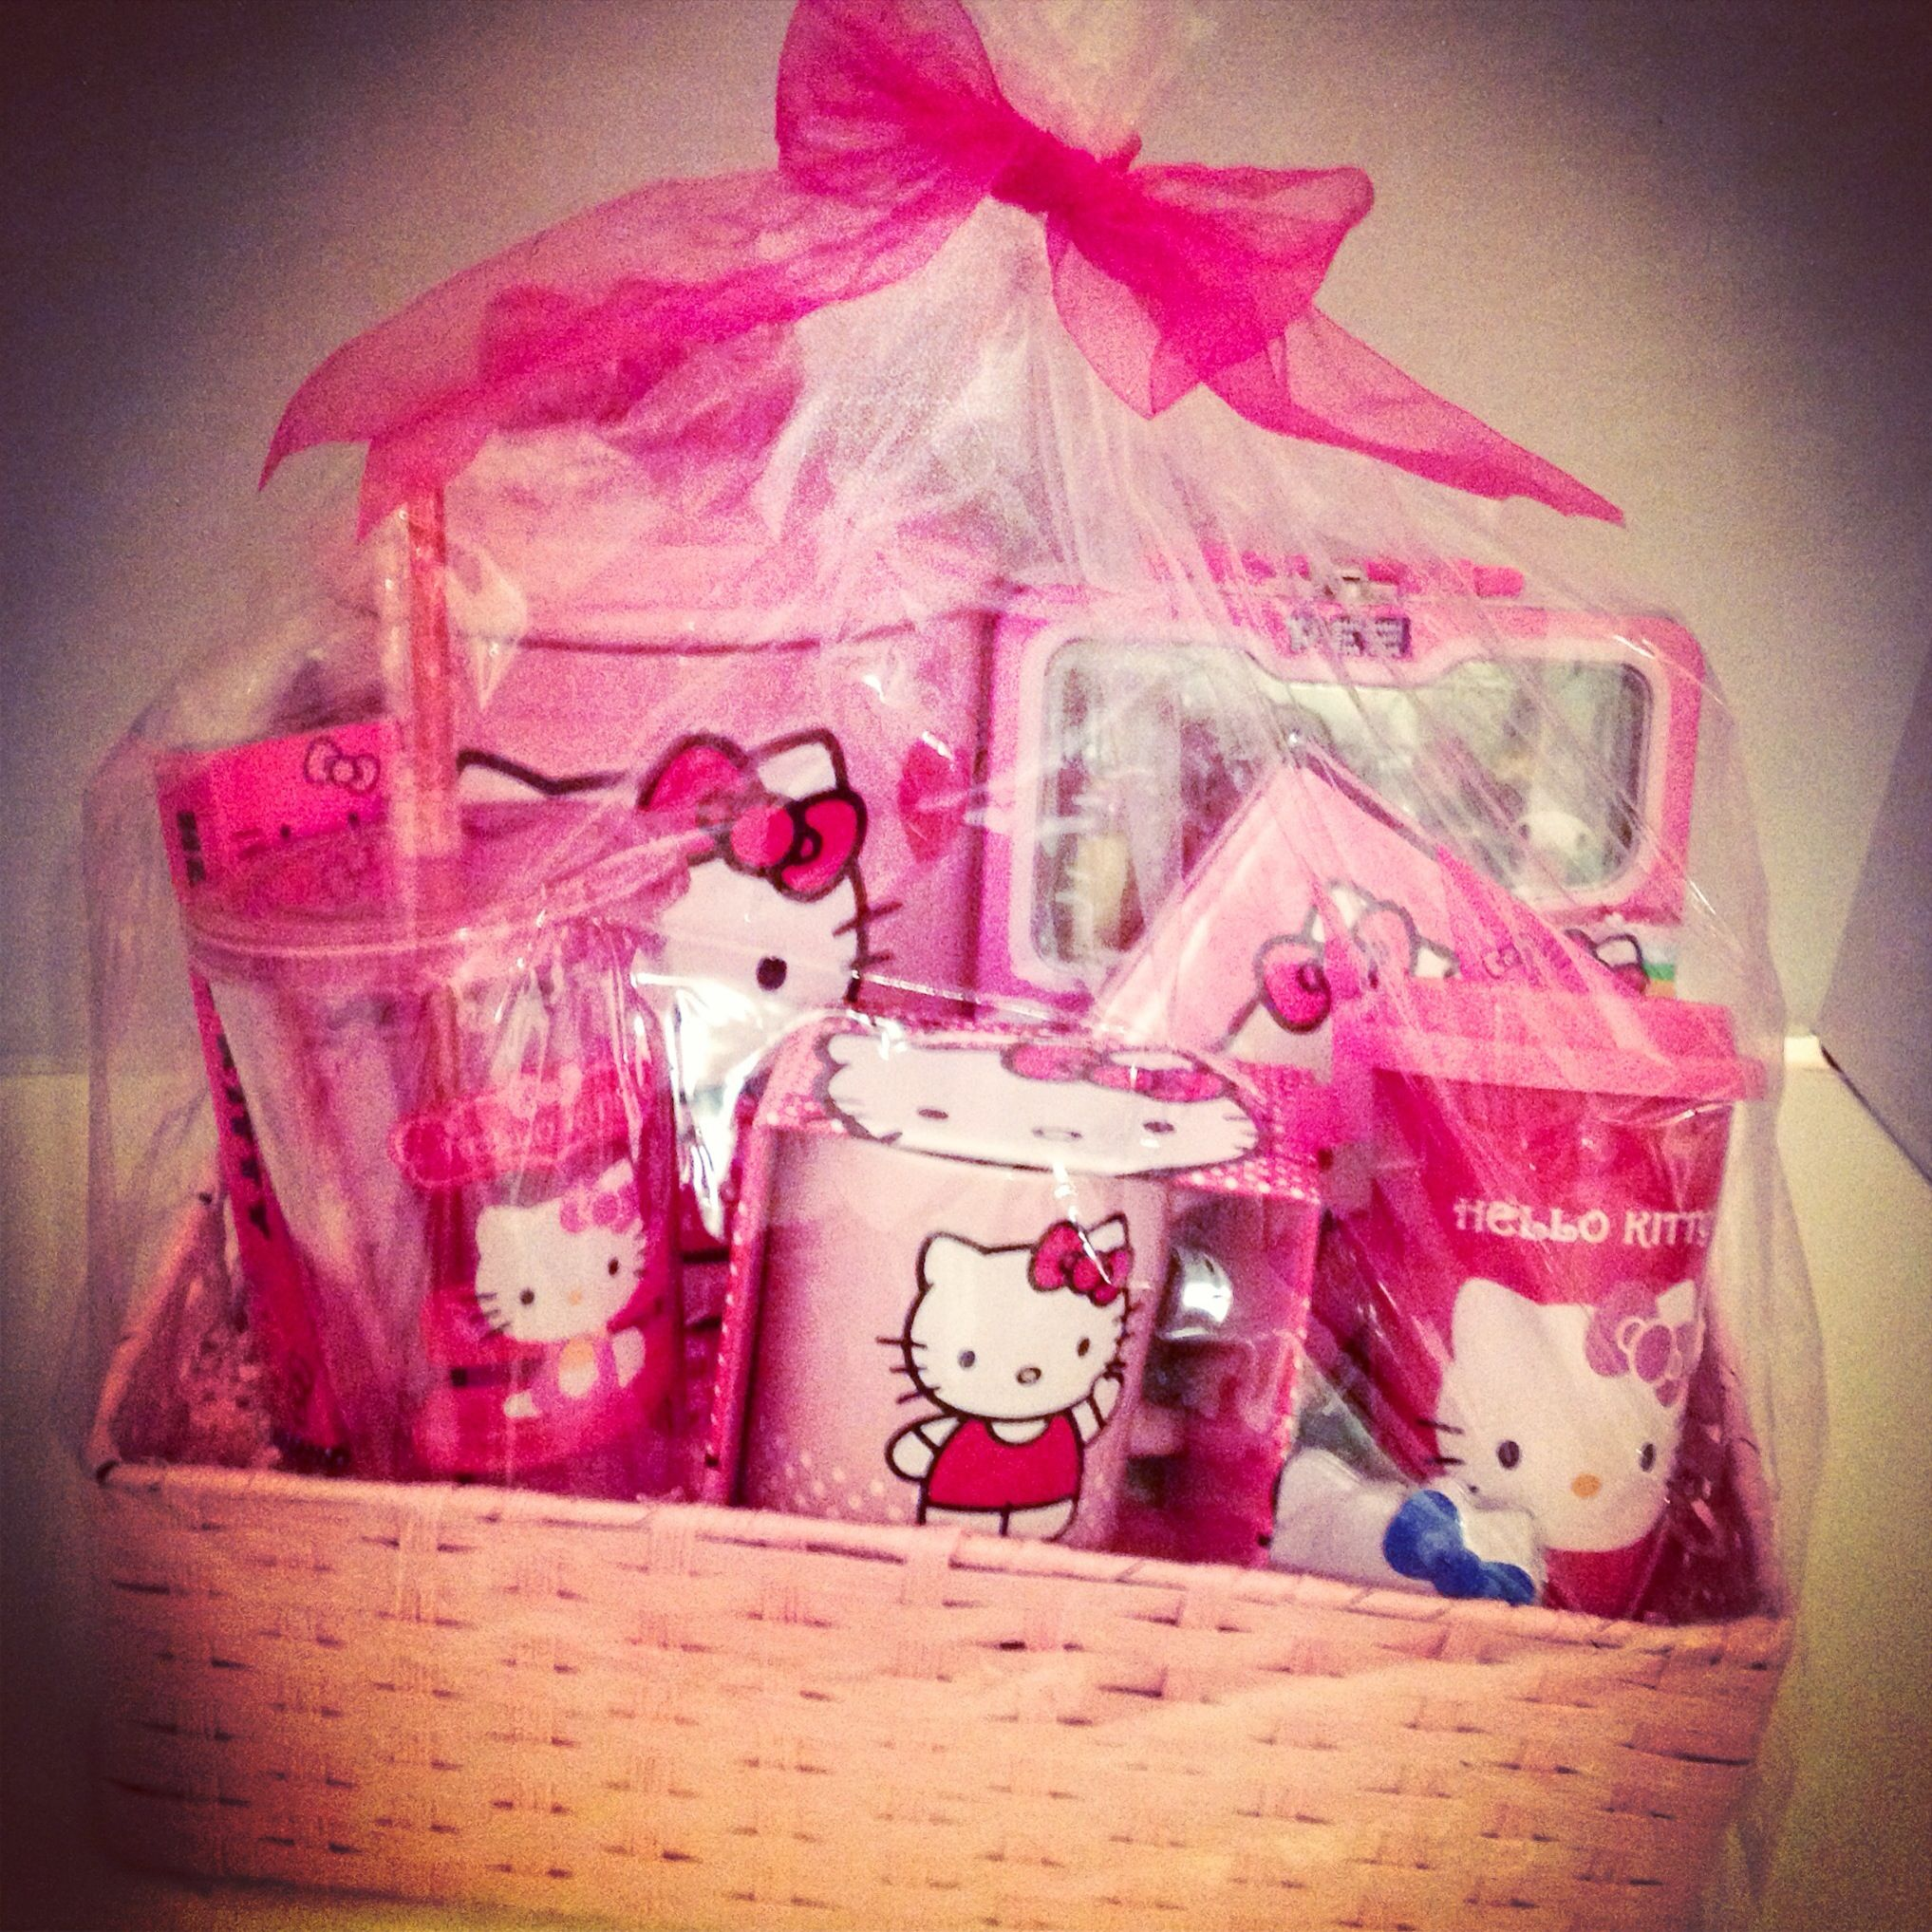 15pc hello kitty gift basket available now at the trulytina 15pc hello kitty gift basket available now at the trulytina boutique negle Image collections